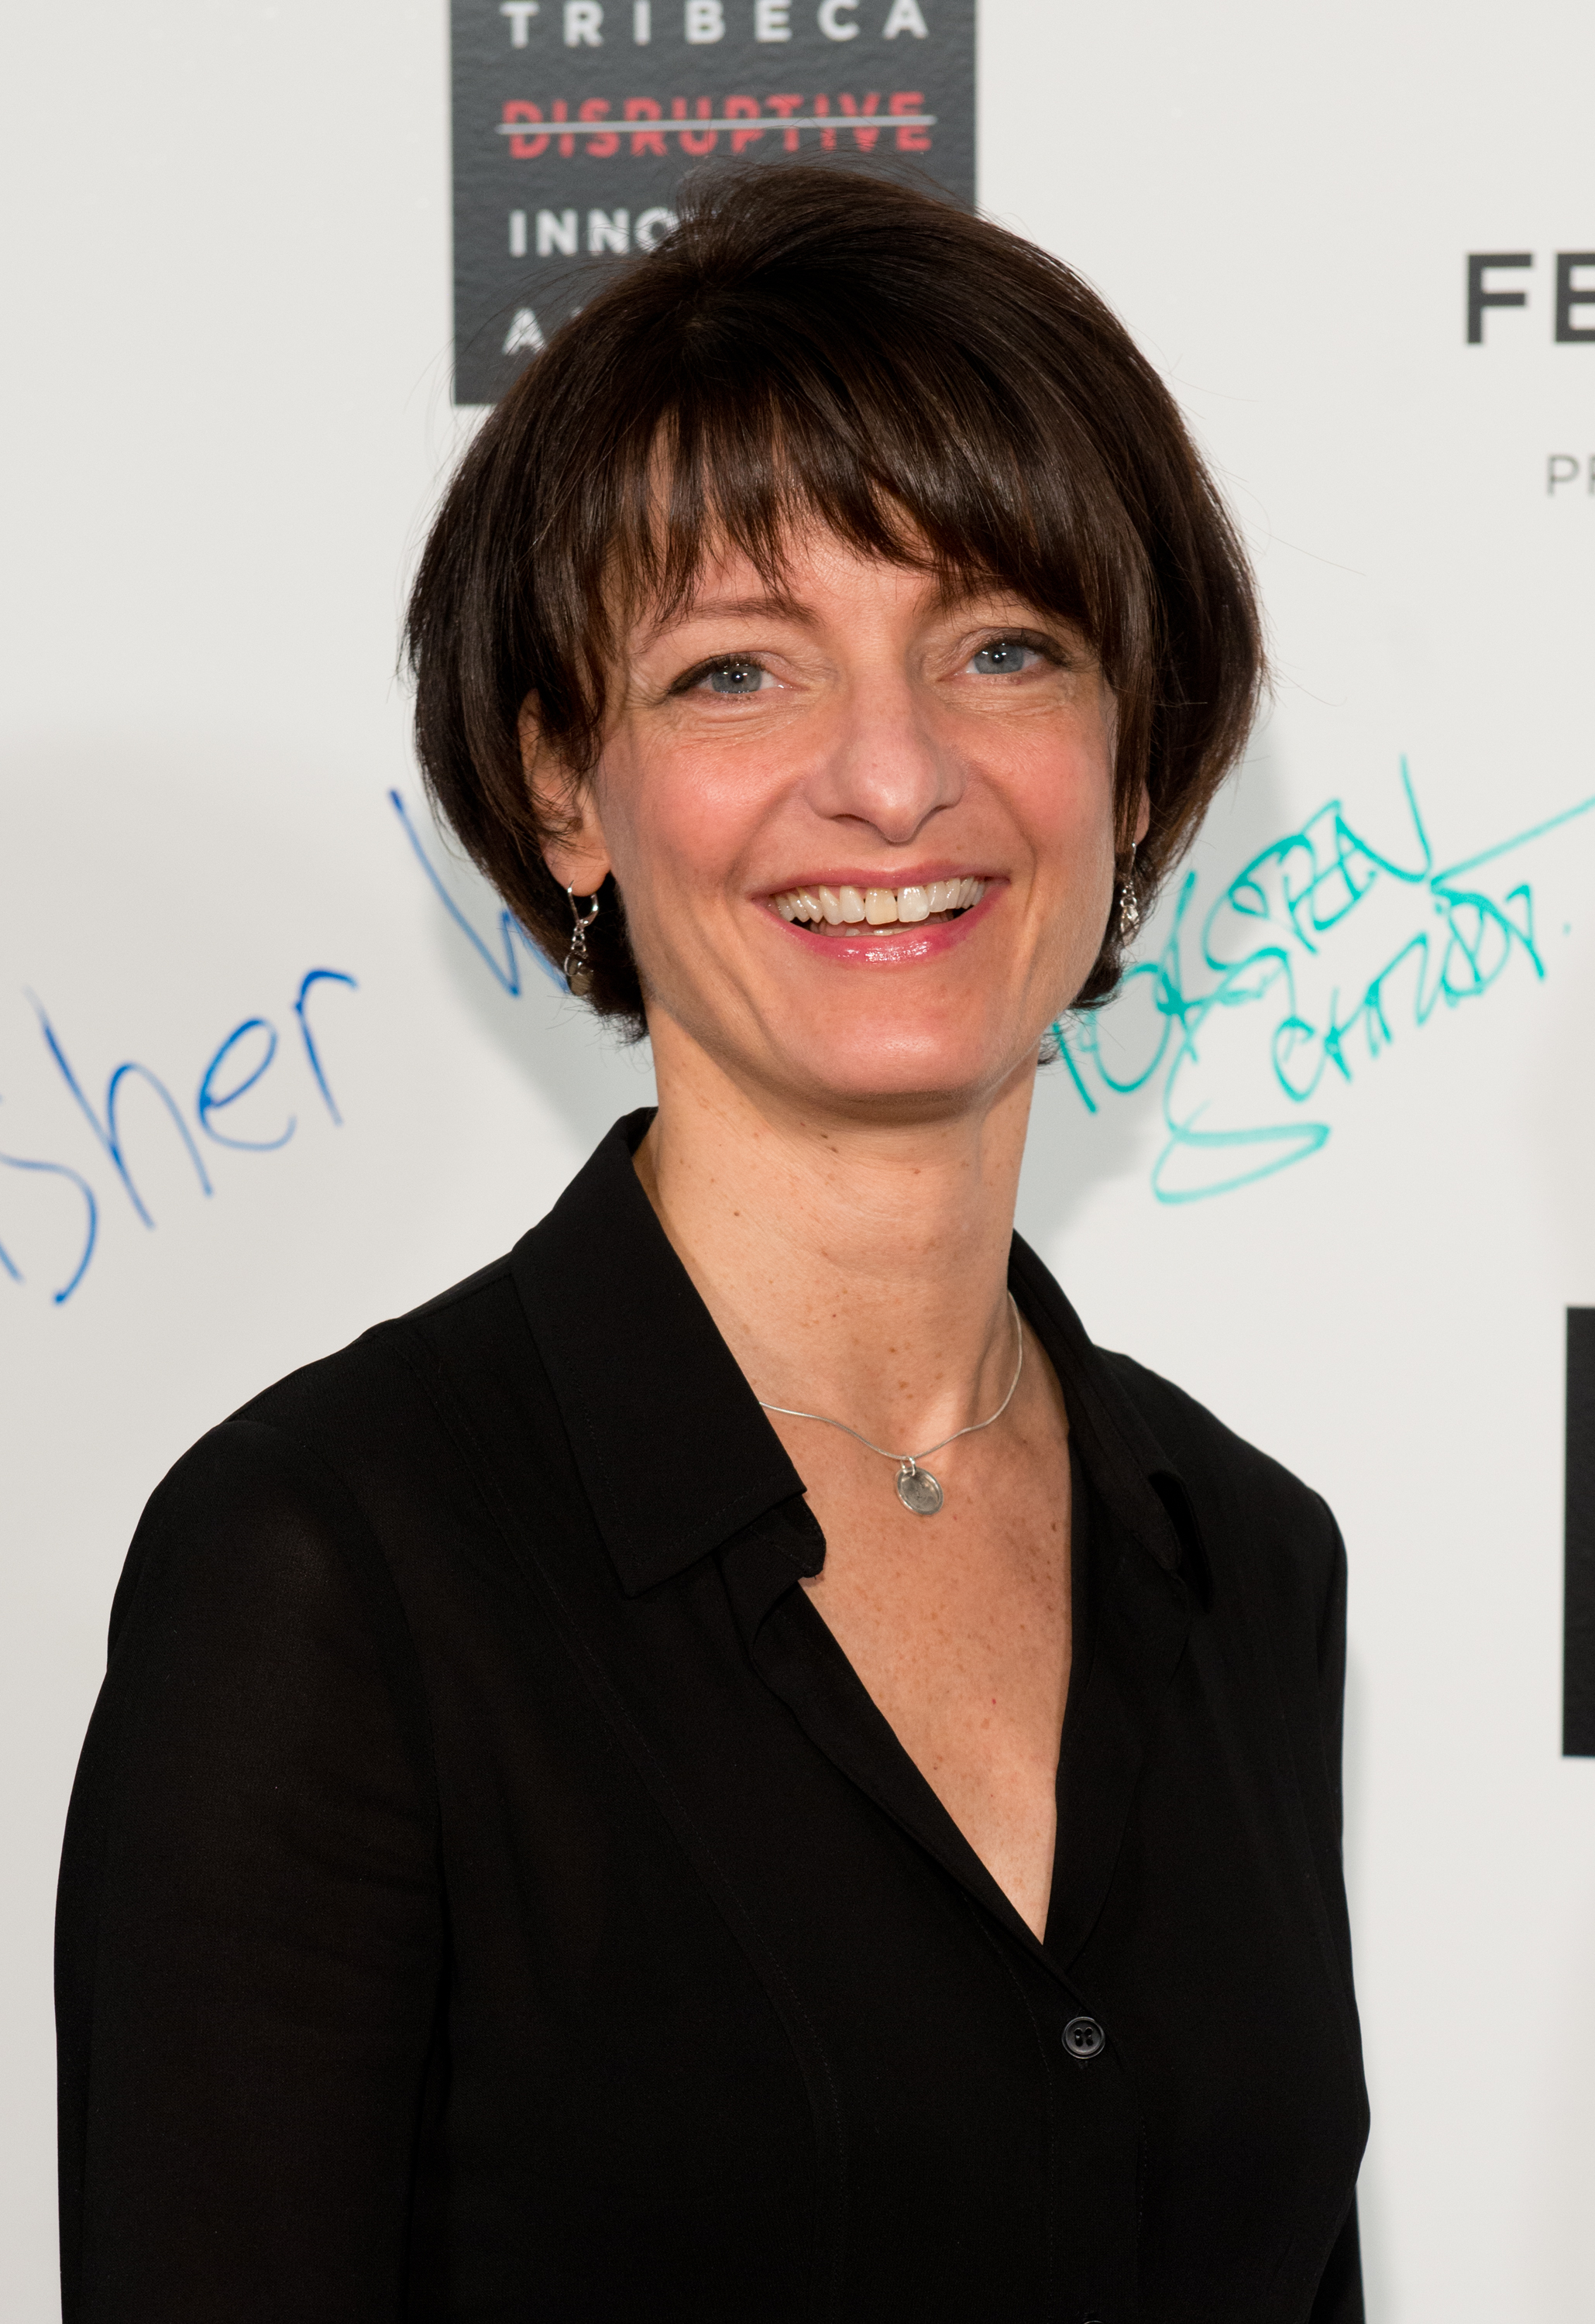 Regina Dugan attends The Disruptive Innovation Awards during the 2014 Tribeca Film Festival at Jack H. Skirball Center for the Performing Arts on April 25, 2014 in New York City.